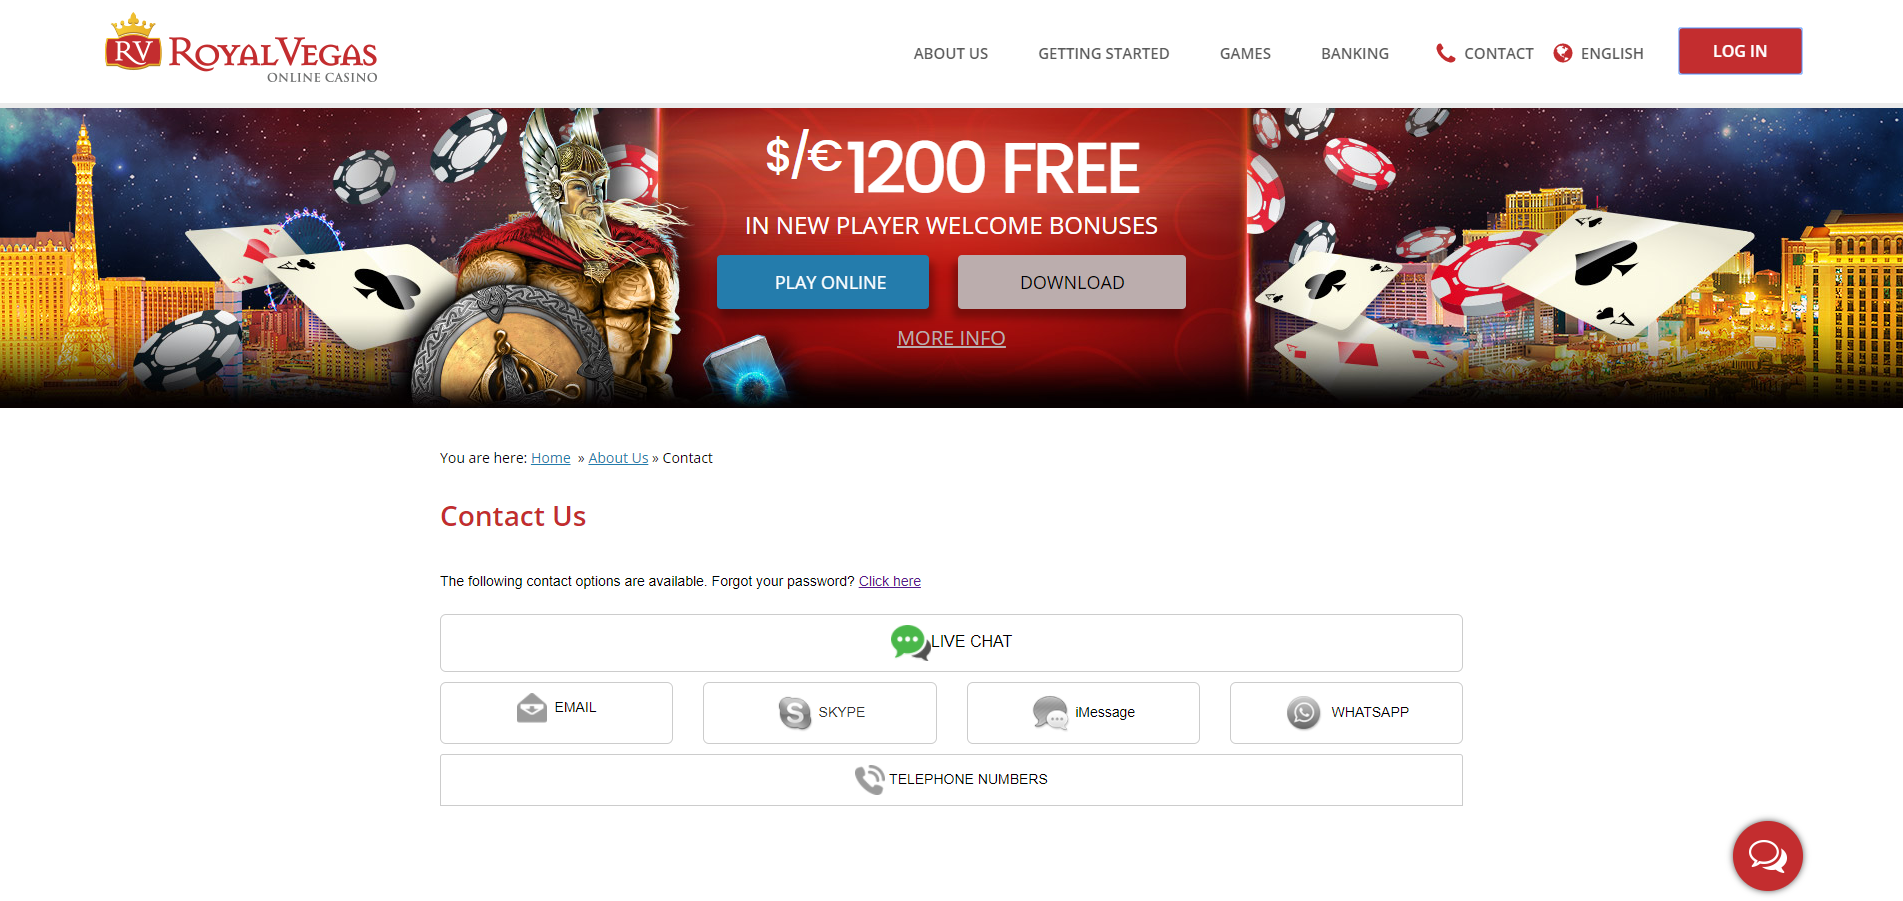 NedPlay Casino Online Review With Promotions & Bonuses